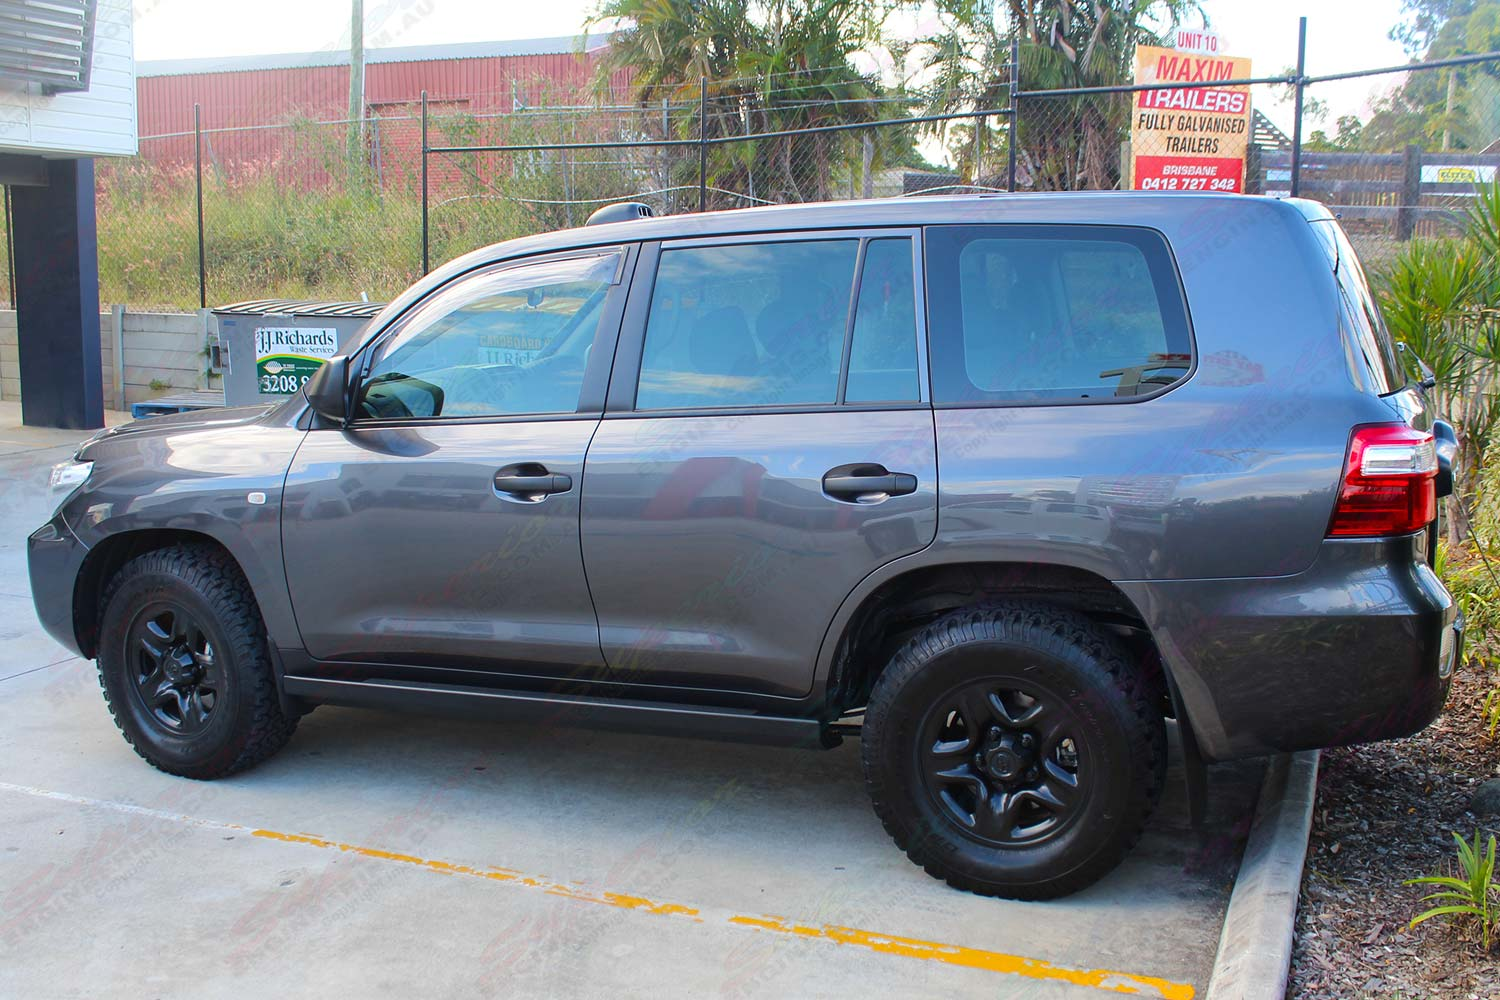 Left side view of a dark grey 200 Series Toyota Landcruiser 4wd fitted with a set of heavy duty Superior Engineering stealth rock sliders